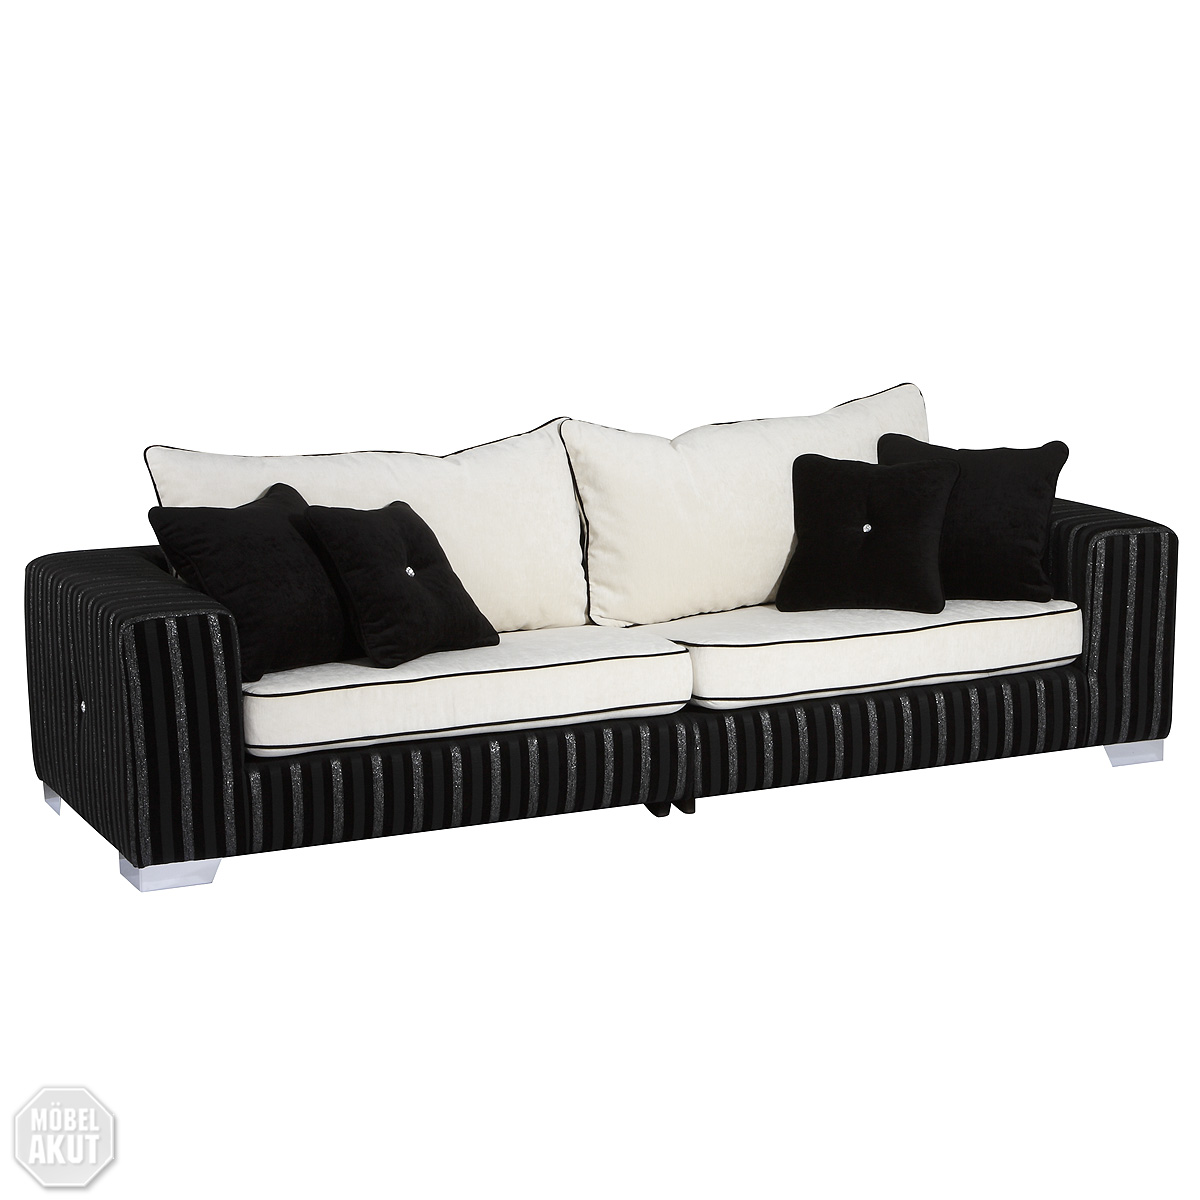 3er sofa lorenzo in schwarz weiss swarovski neu ebay. Black Bedroom Furniture Sets. Home Design Ideas